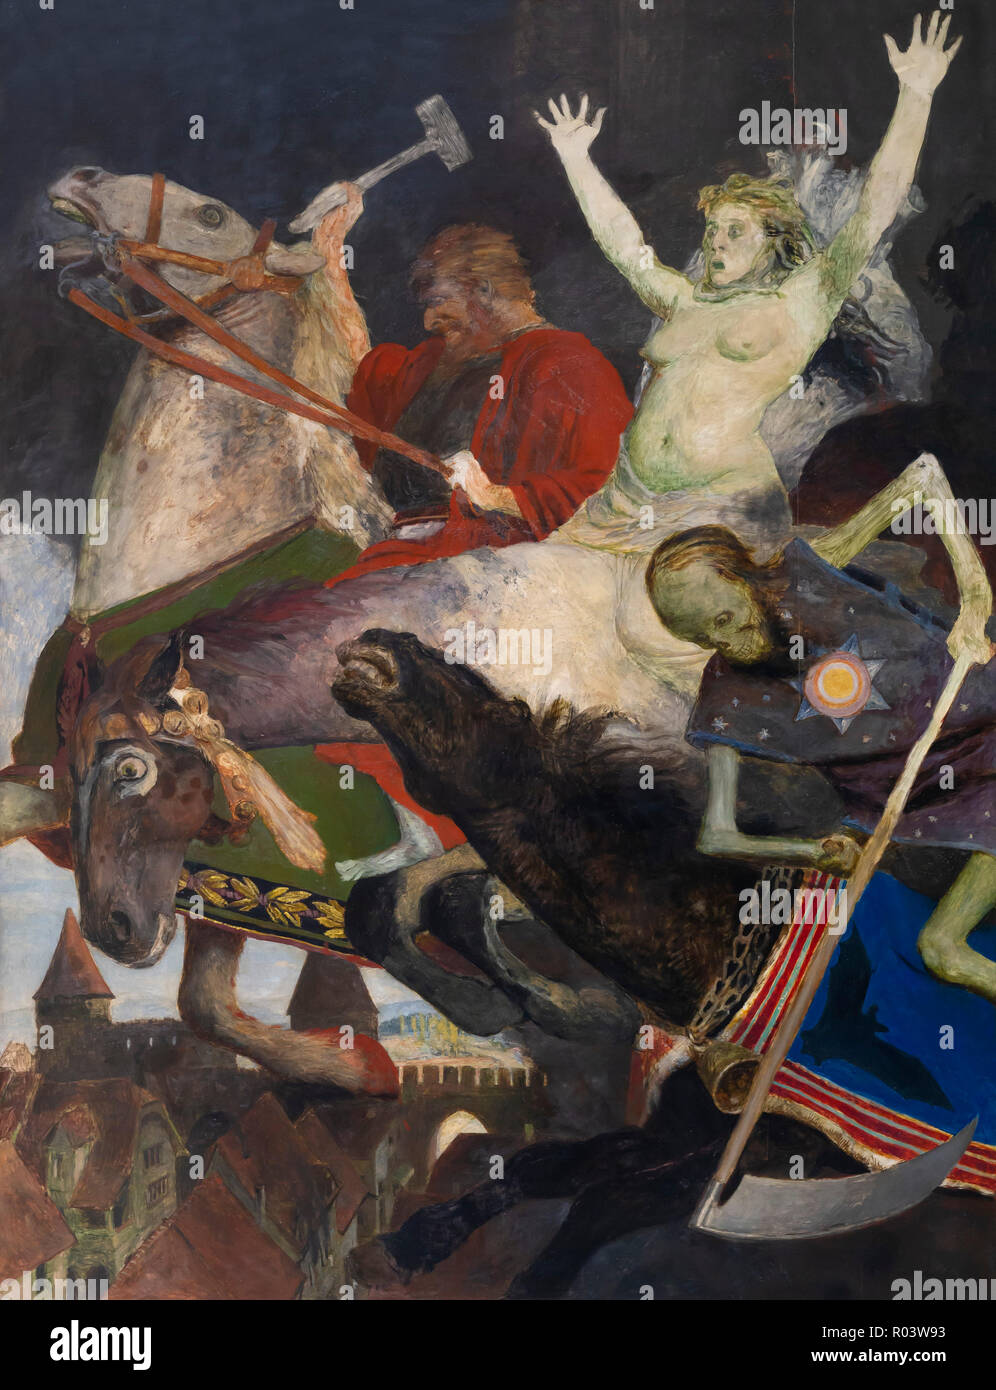 La guerre, Arnold Bocklin, circa 1897, Kunsthaus Zurich, Zurich, Switzerland, Europe Photo Stock